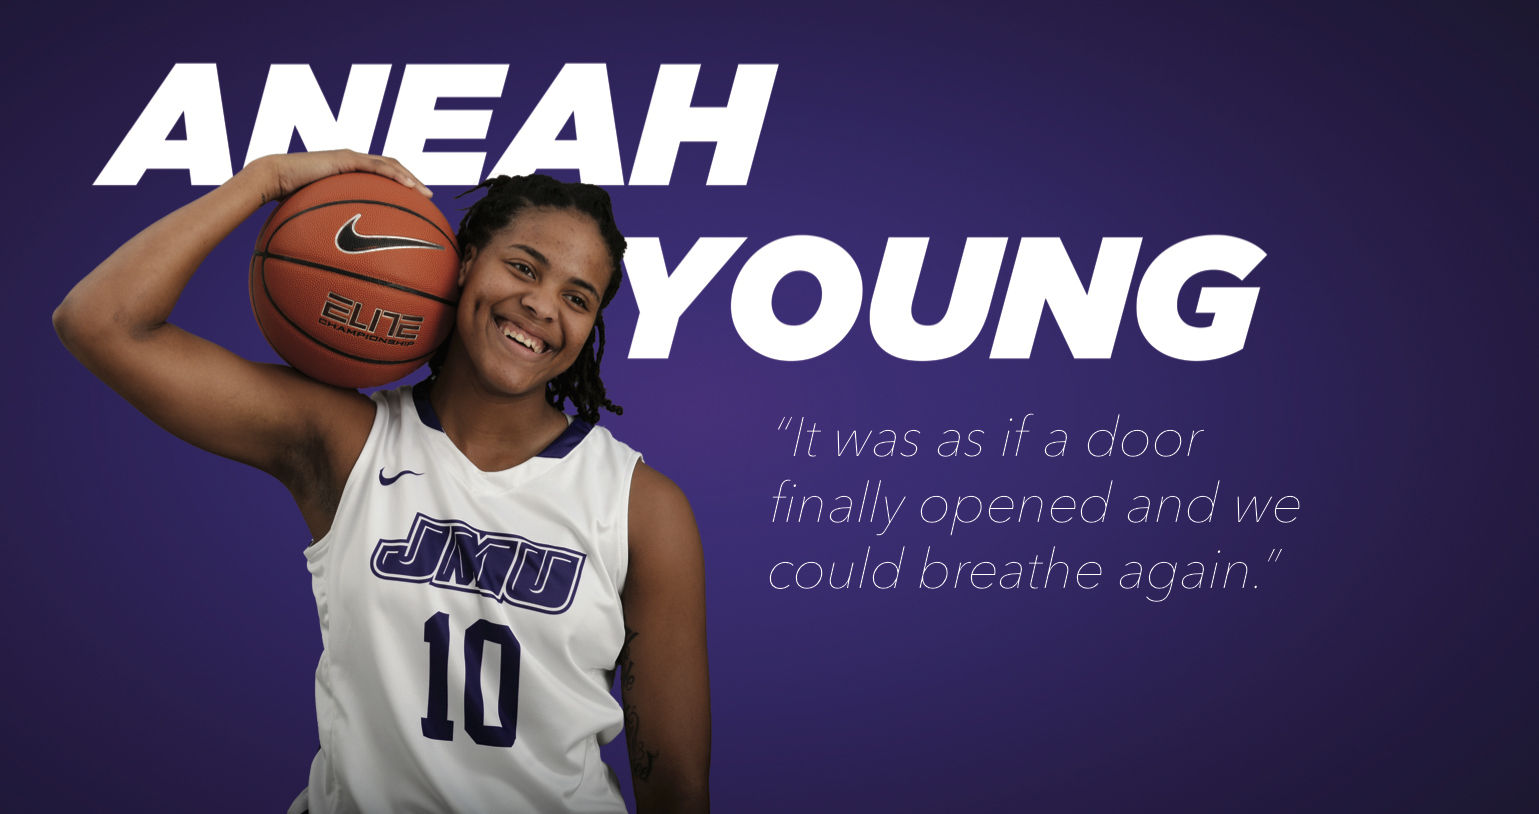 Women's Basketball: Open Doors - A Letter from Aneah Young